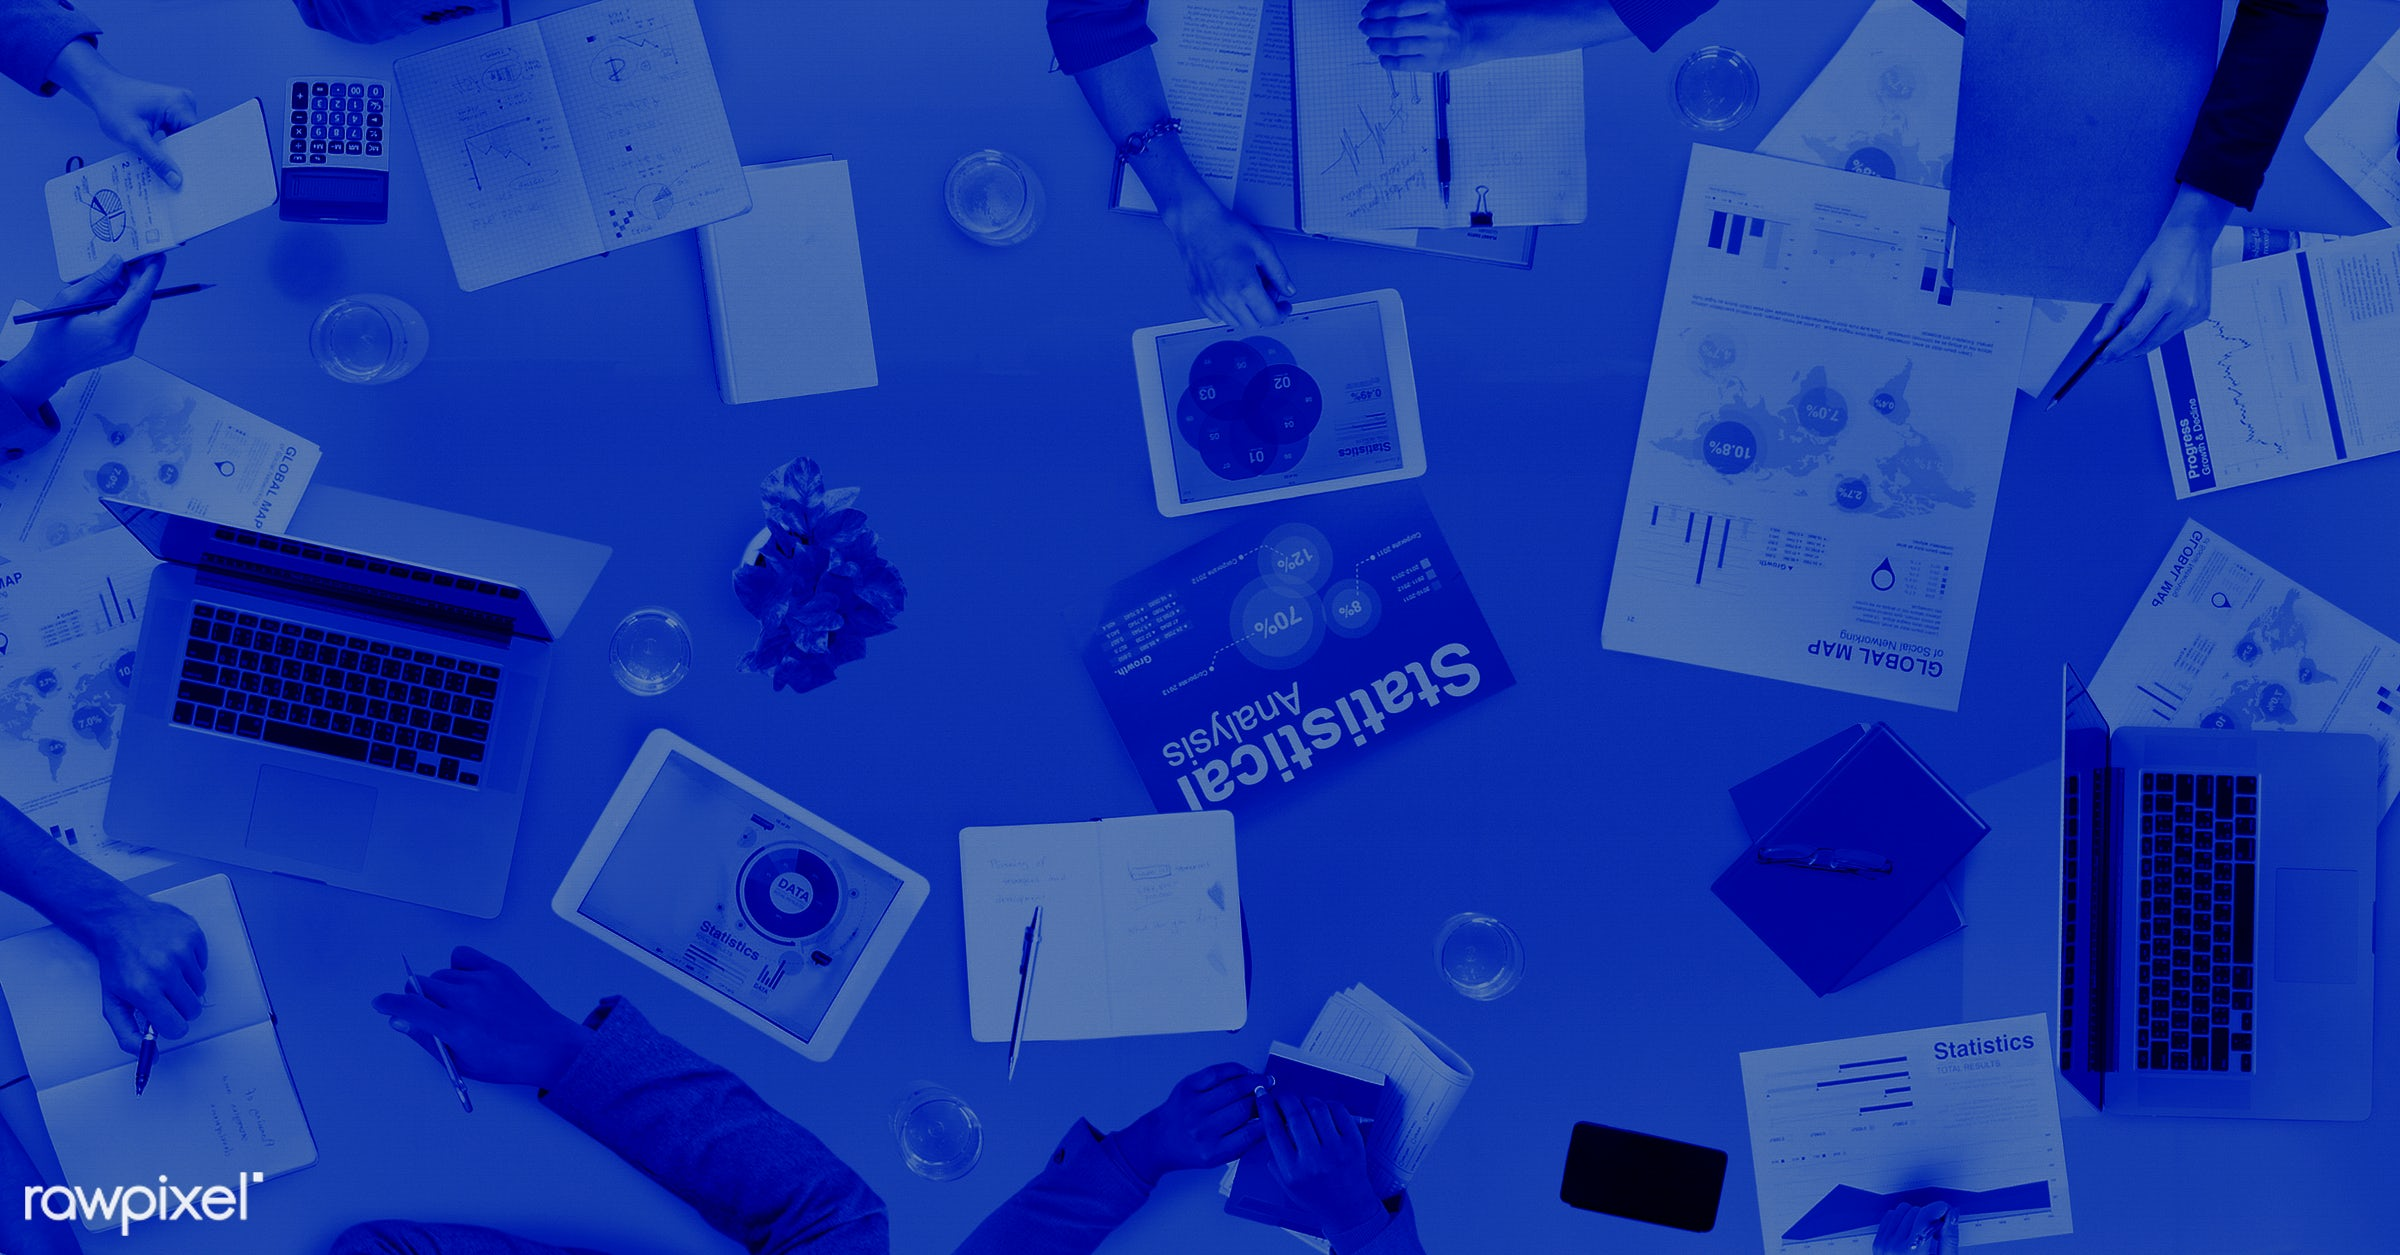 aerial view, analyzing, blue, brainstorming, business, business issues, business people, business person, businessmen,...